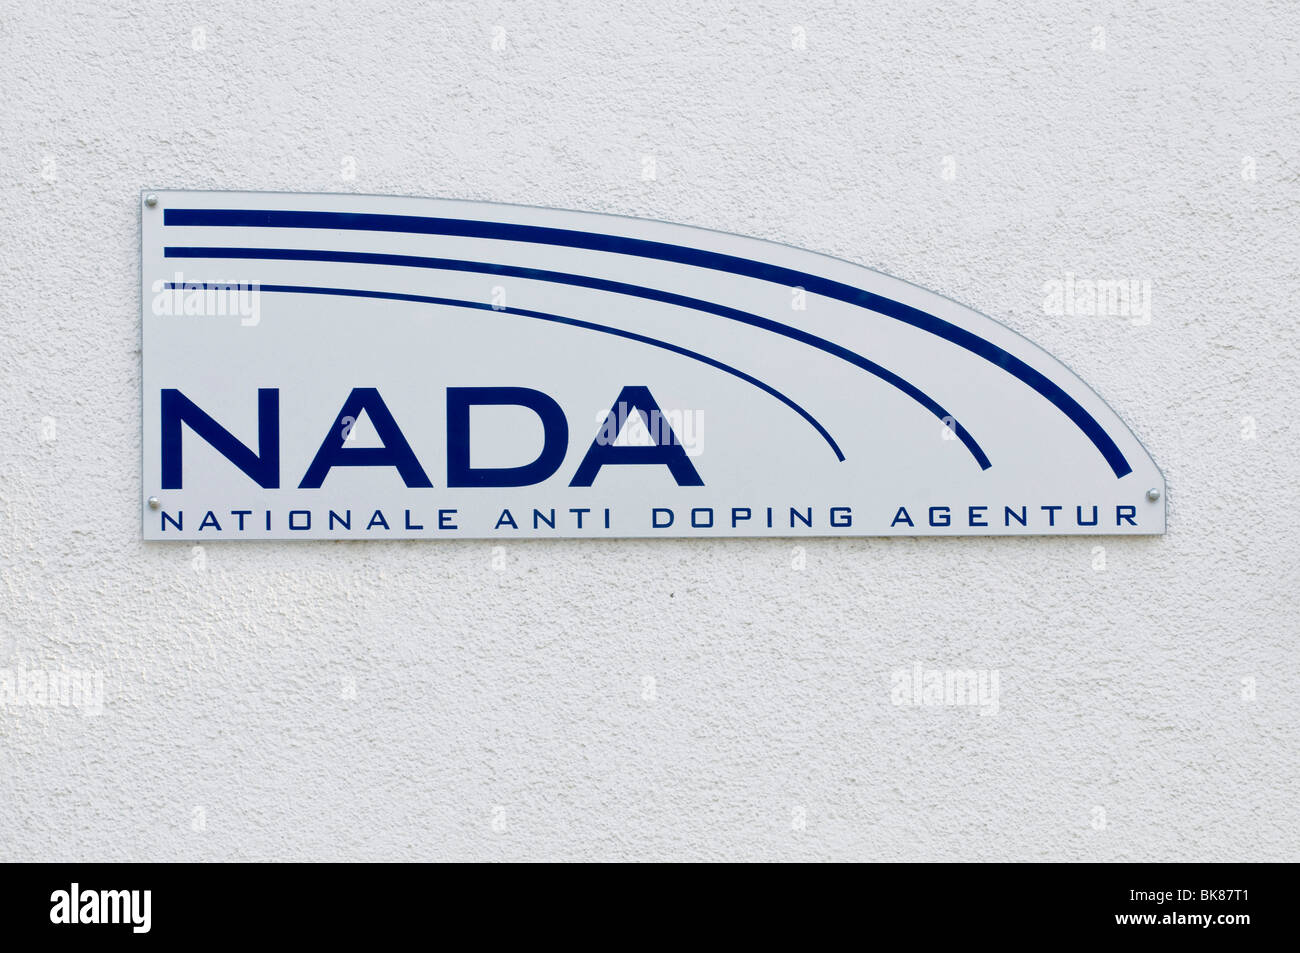 Logo of NADA, the National Anti-Doping Agency Germany - Stock Image